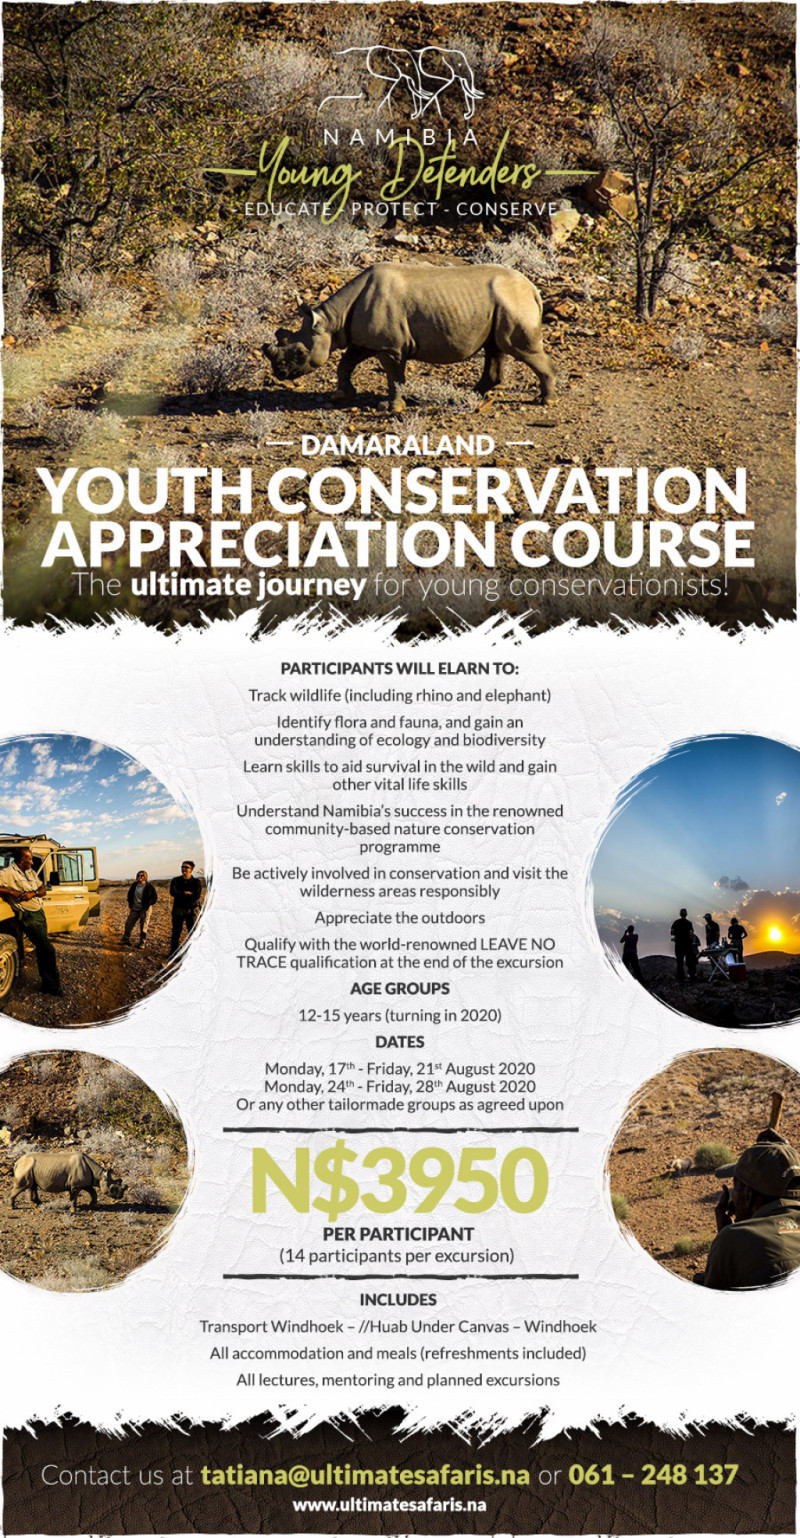 Youth Conservation Appreciation Course